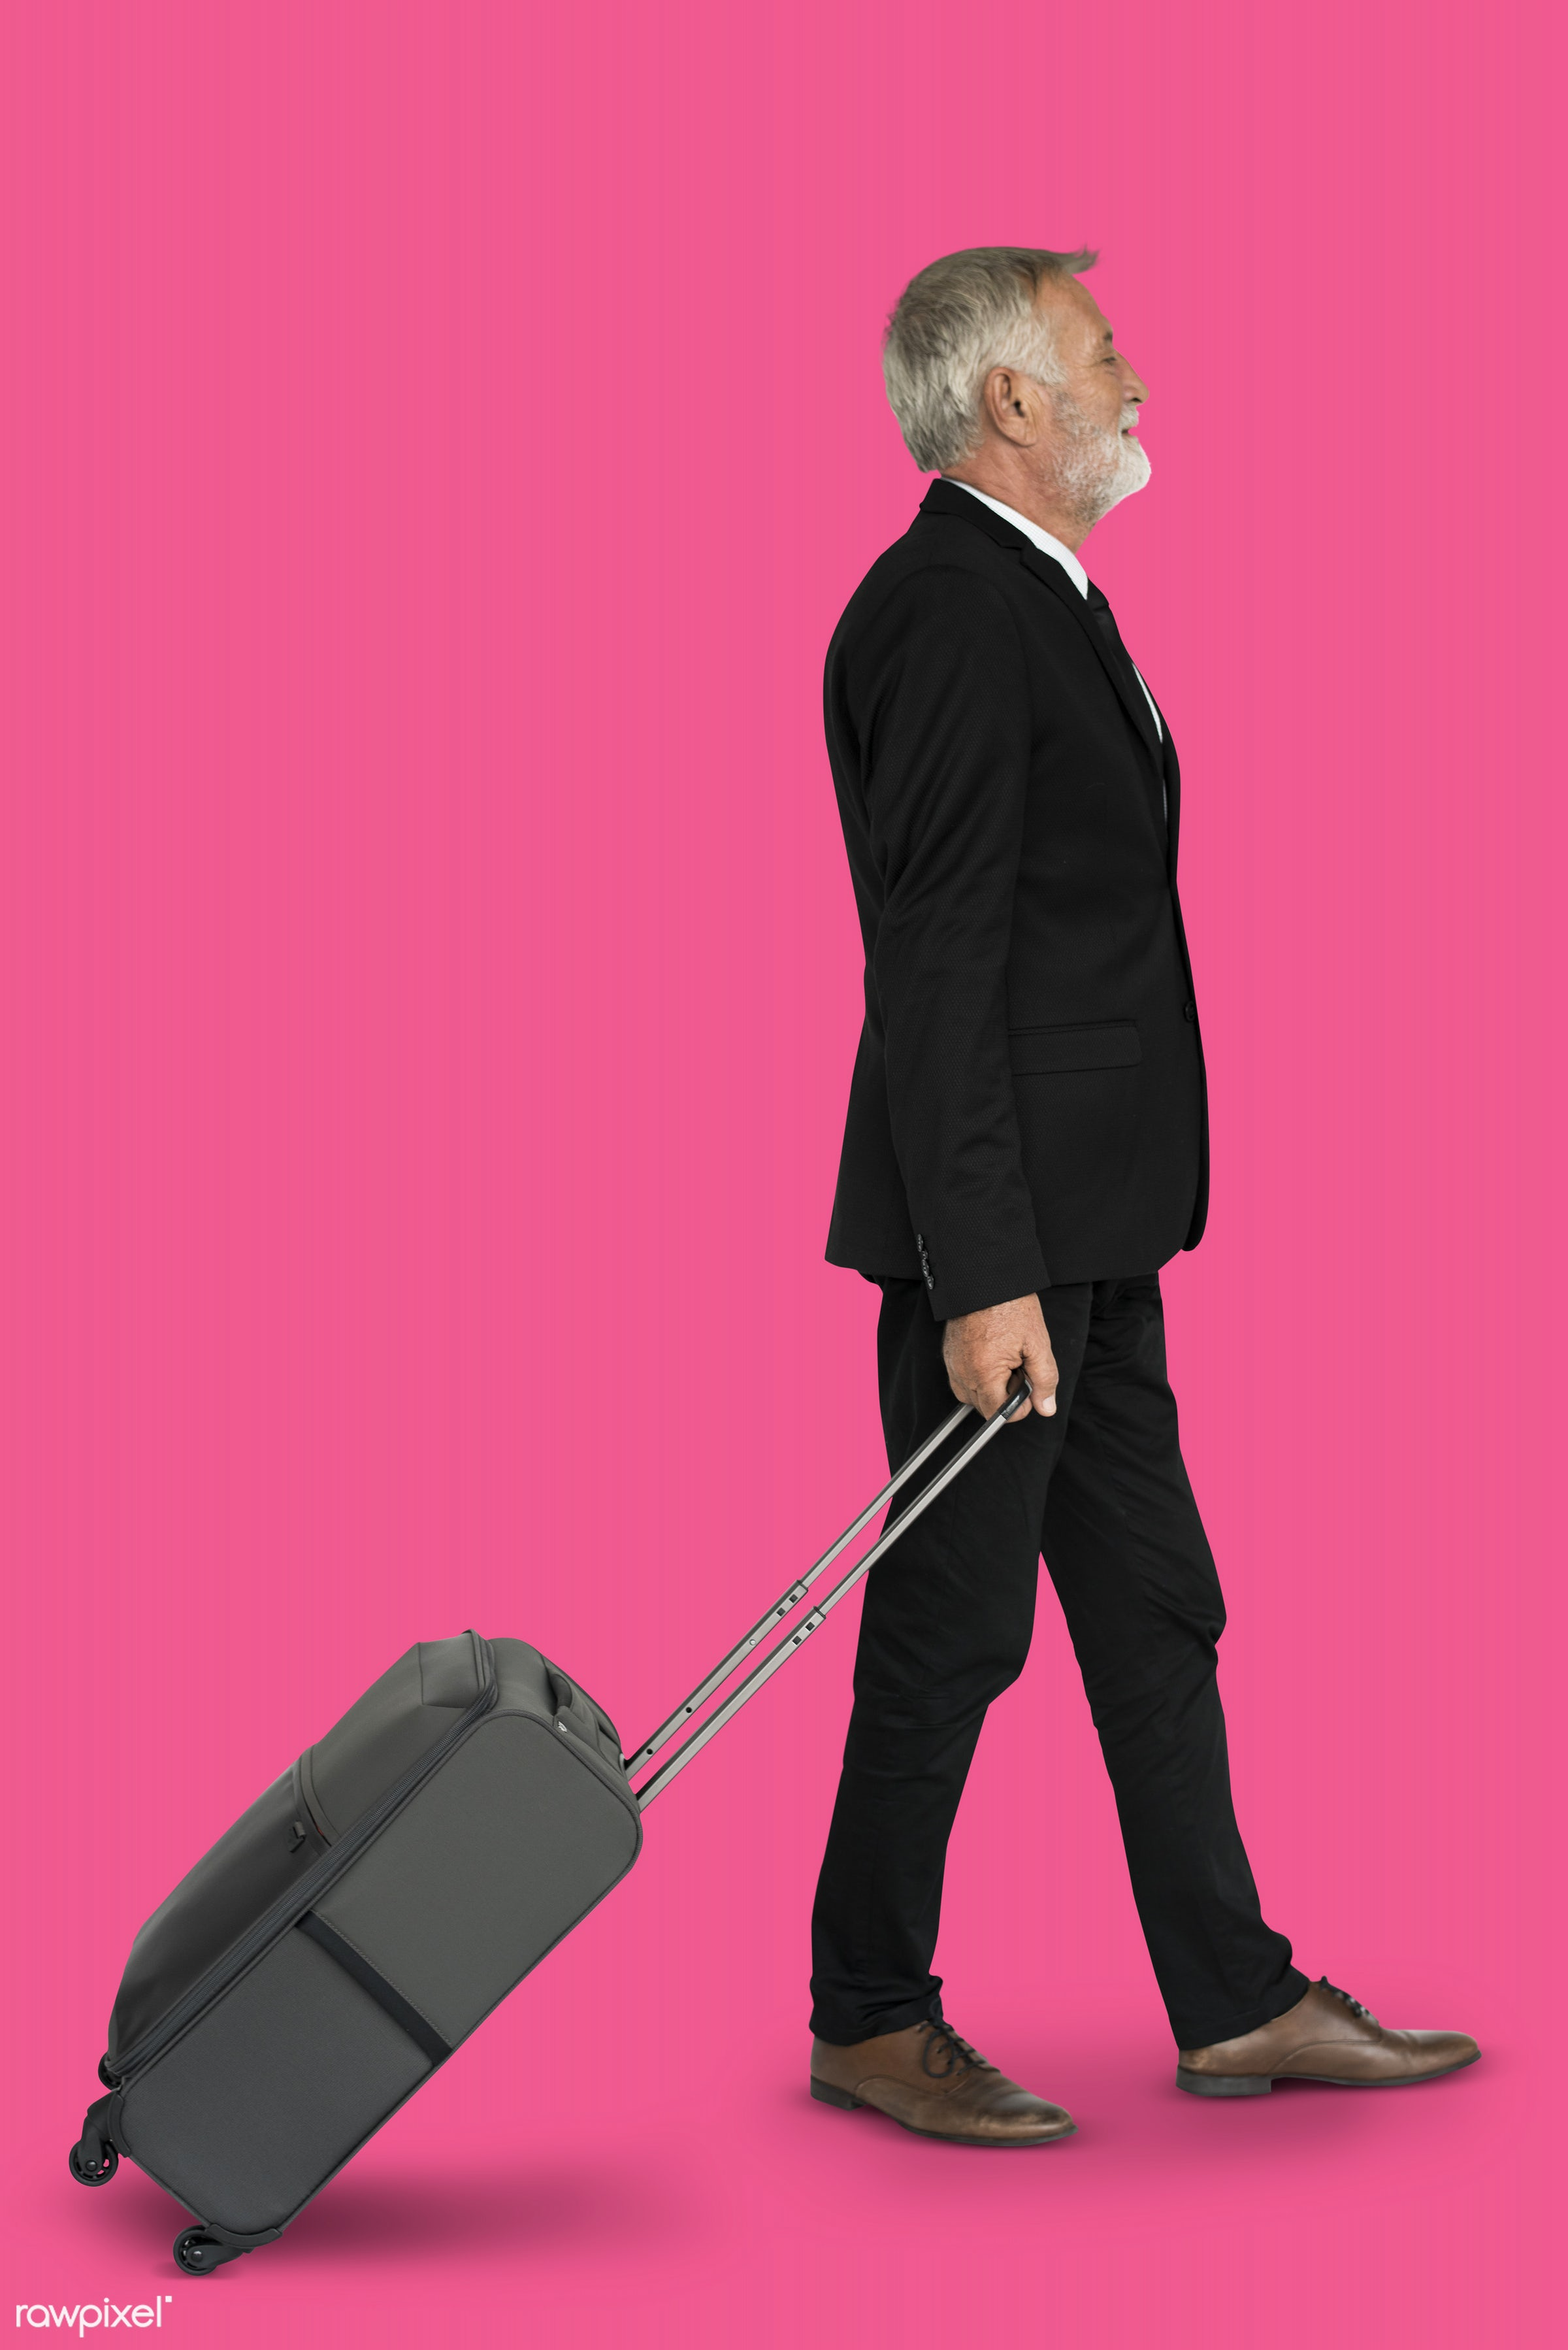 studio, face, person, travel, people, business, businessman, pink, trip, man, isolated, suitcase, male, traveler, business...